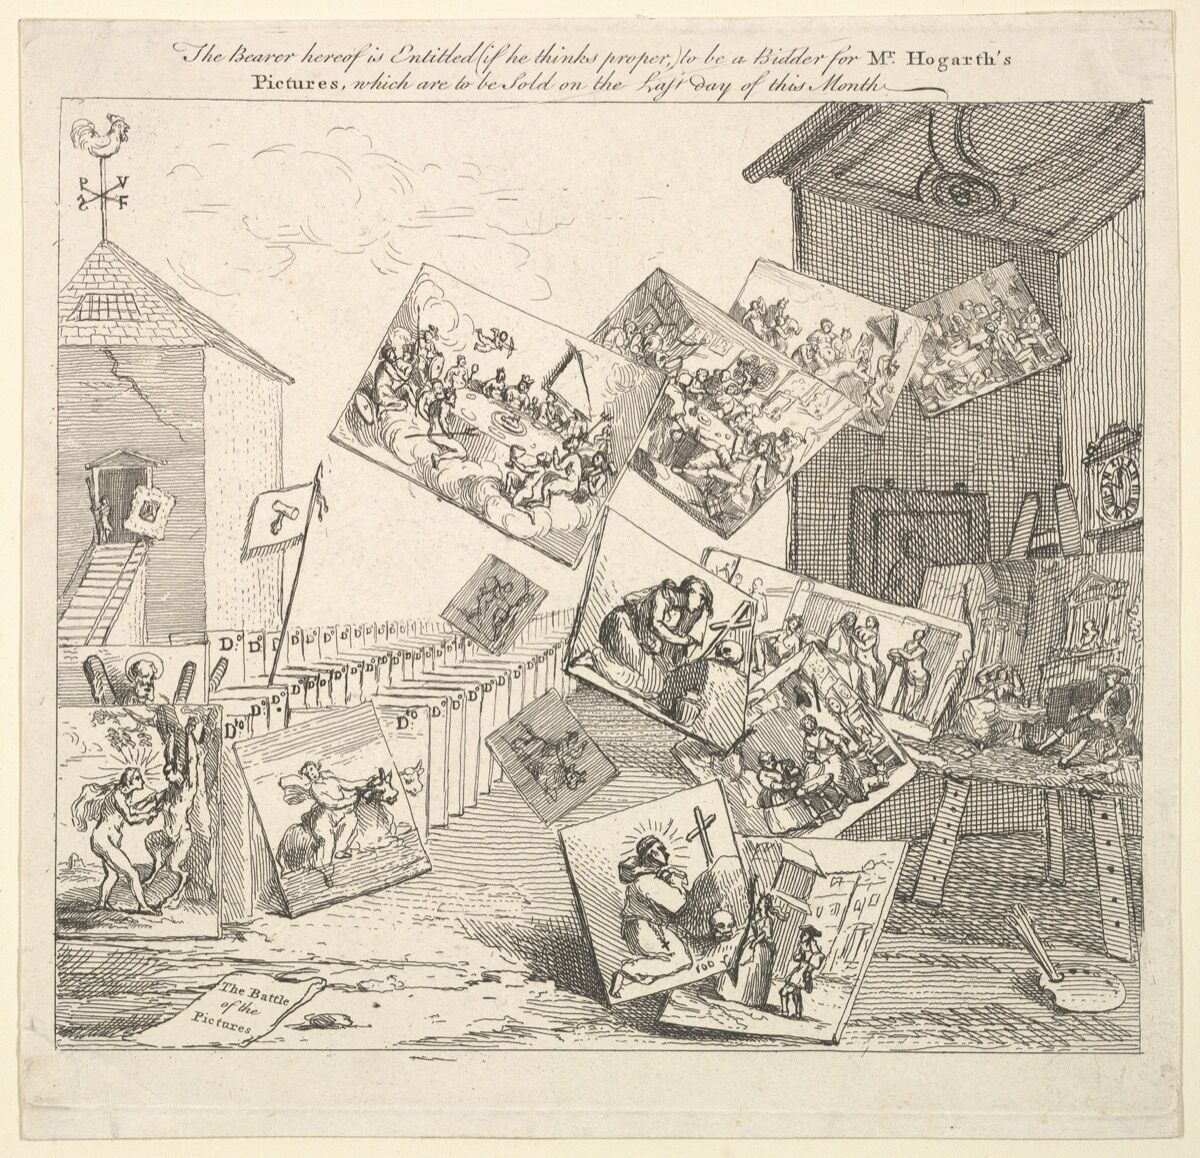 William Hogarth, The Battle of the Pictures, 1745. Courtesy of The Metropolitan Museum of Art.